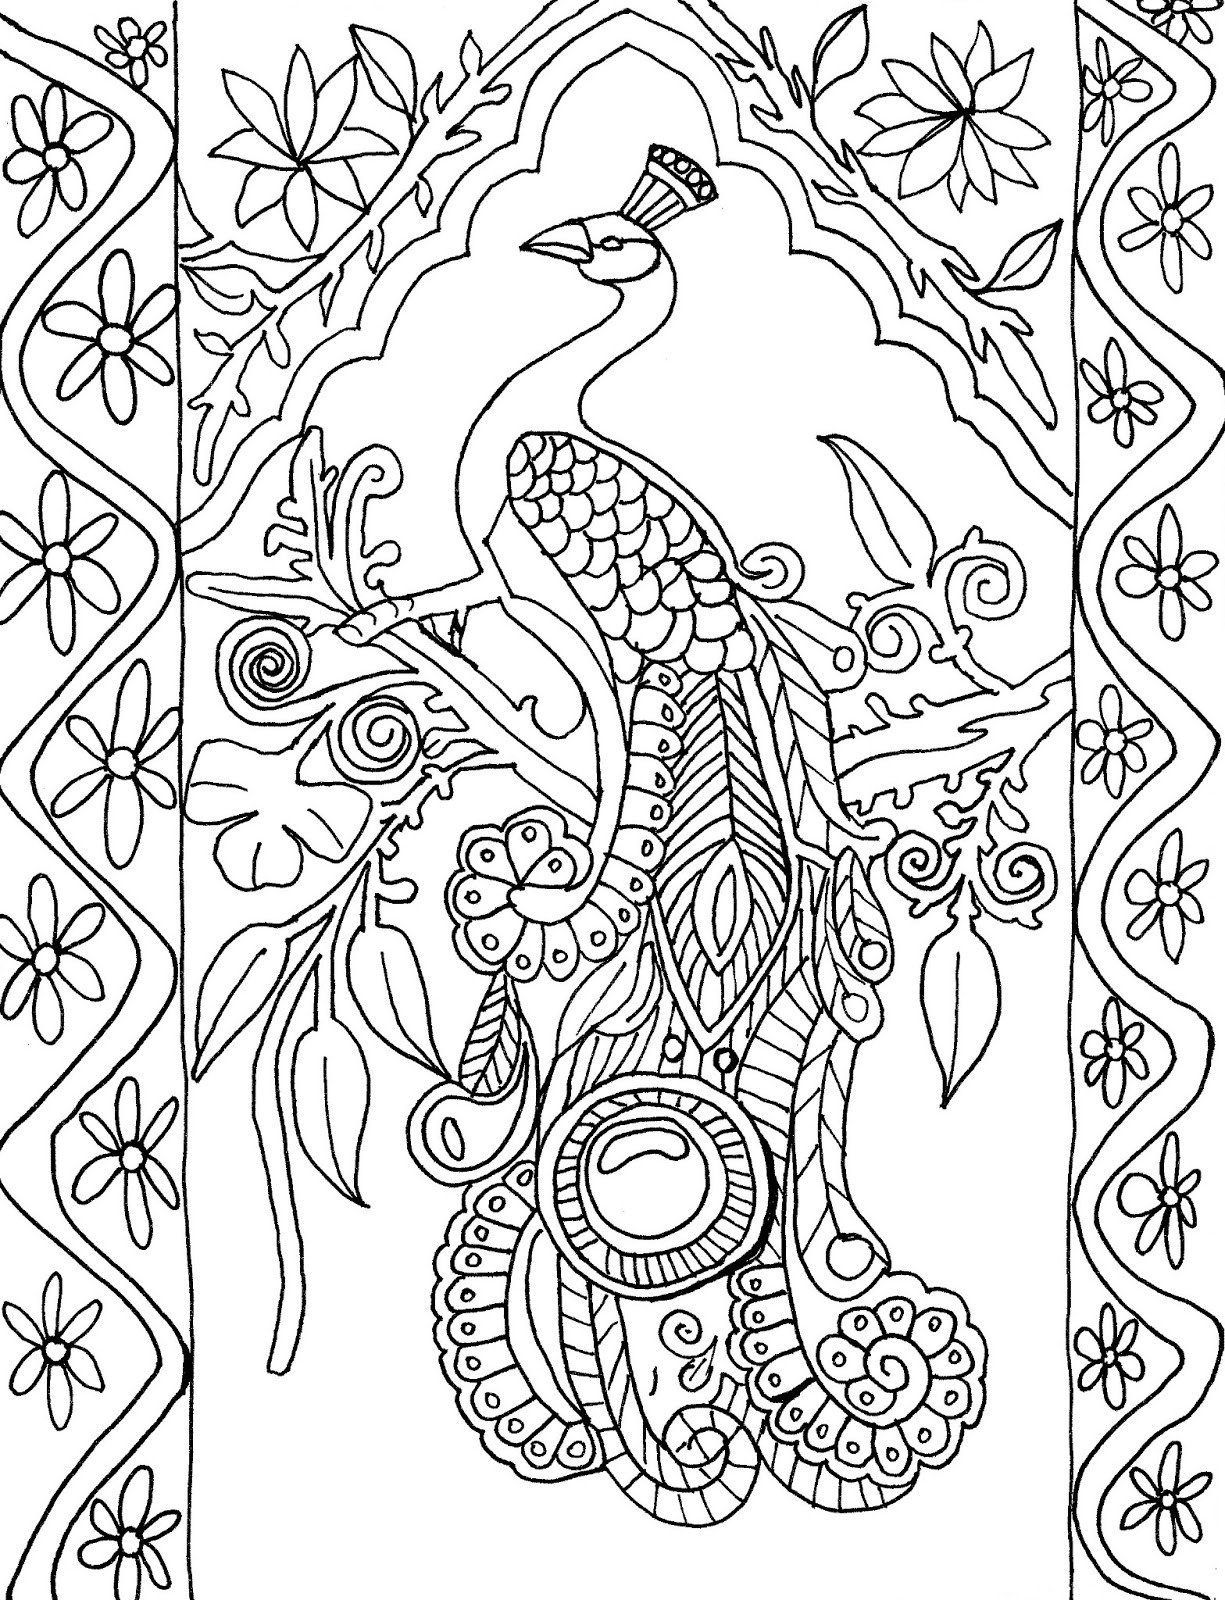 Printable Peacock Coloring Pages Coloring Me Peacock Coloring Page